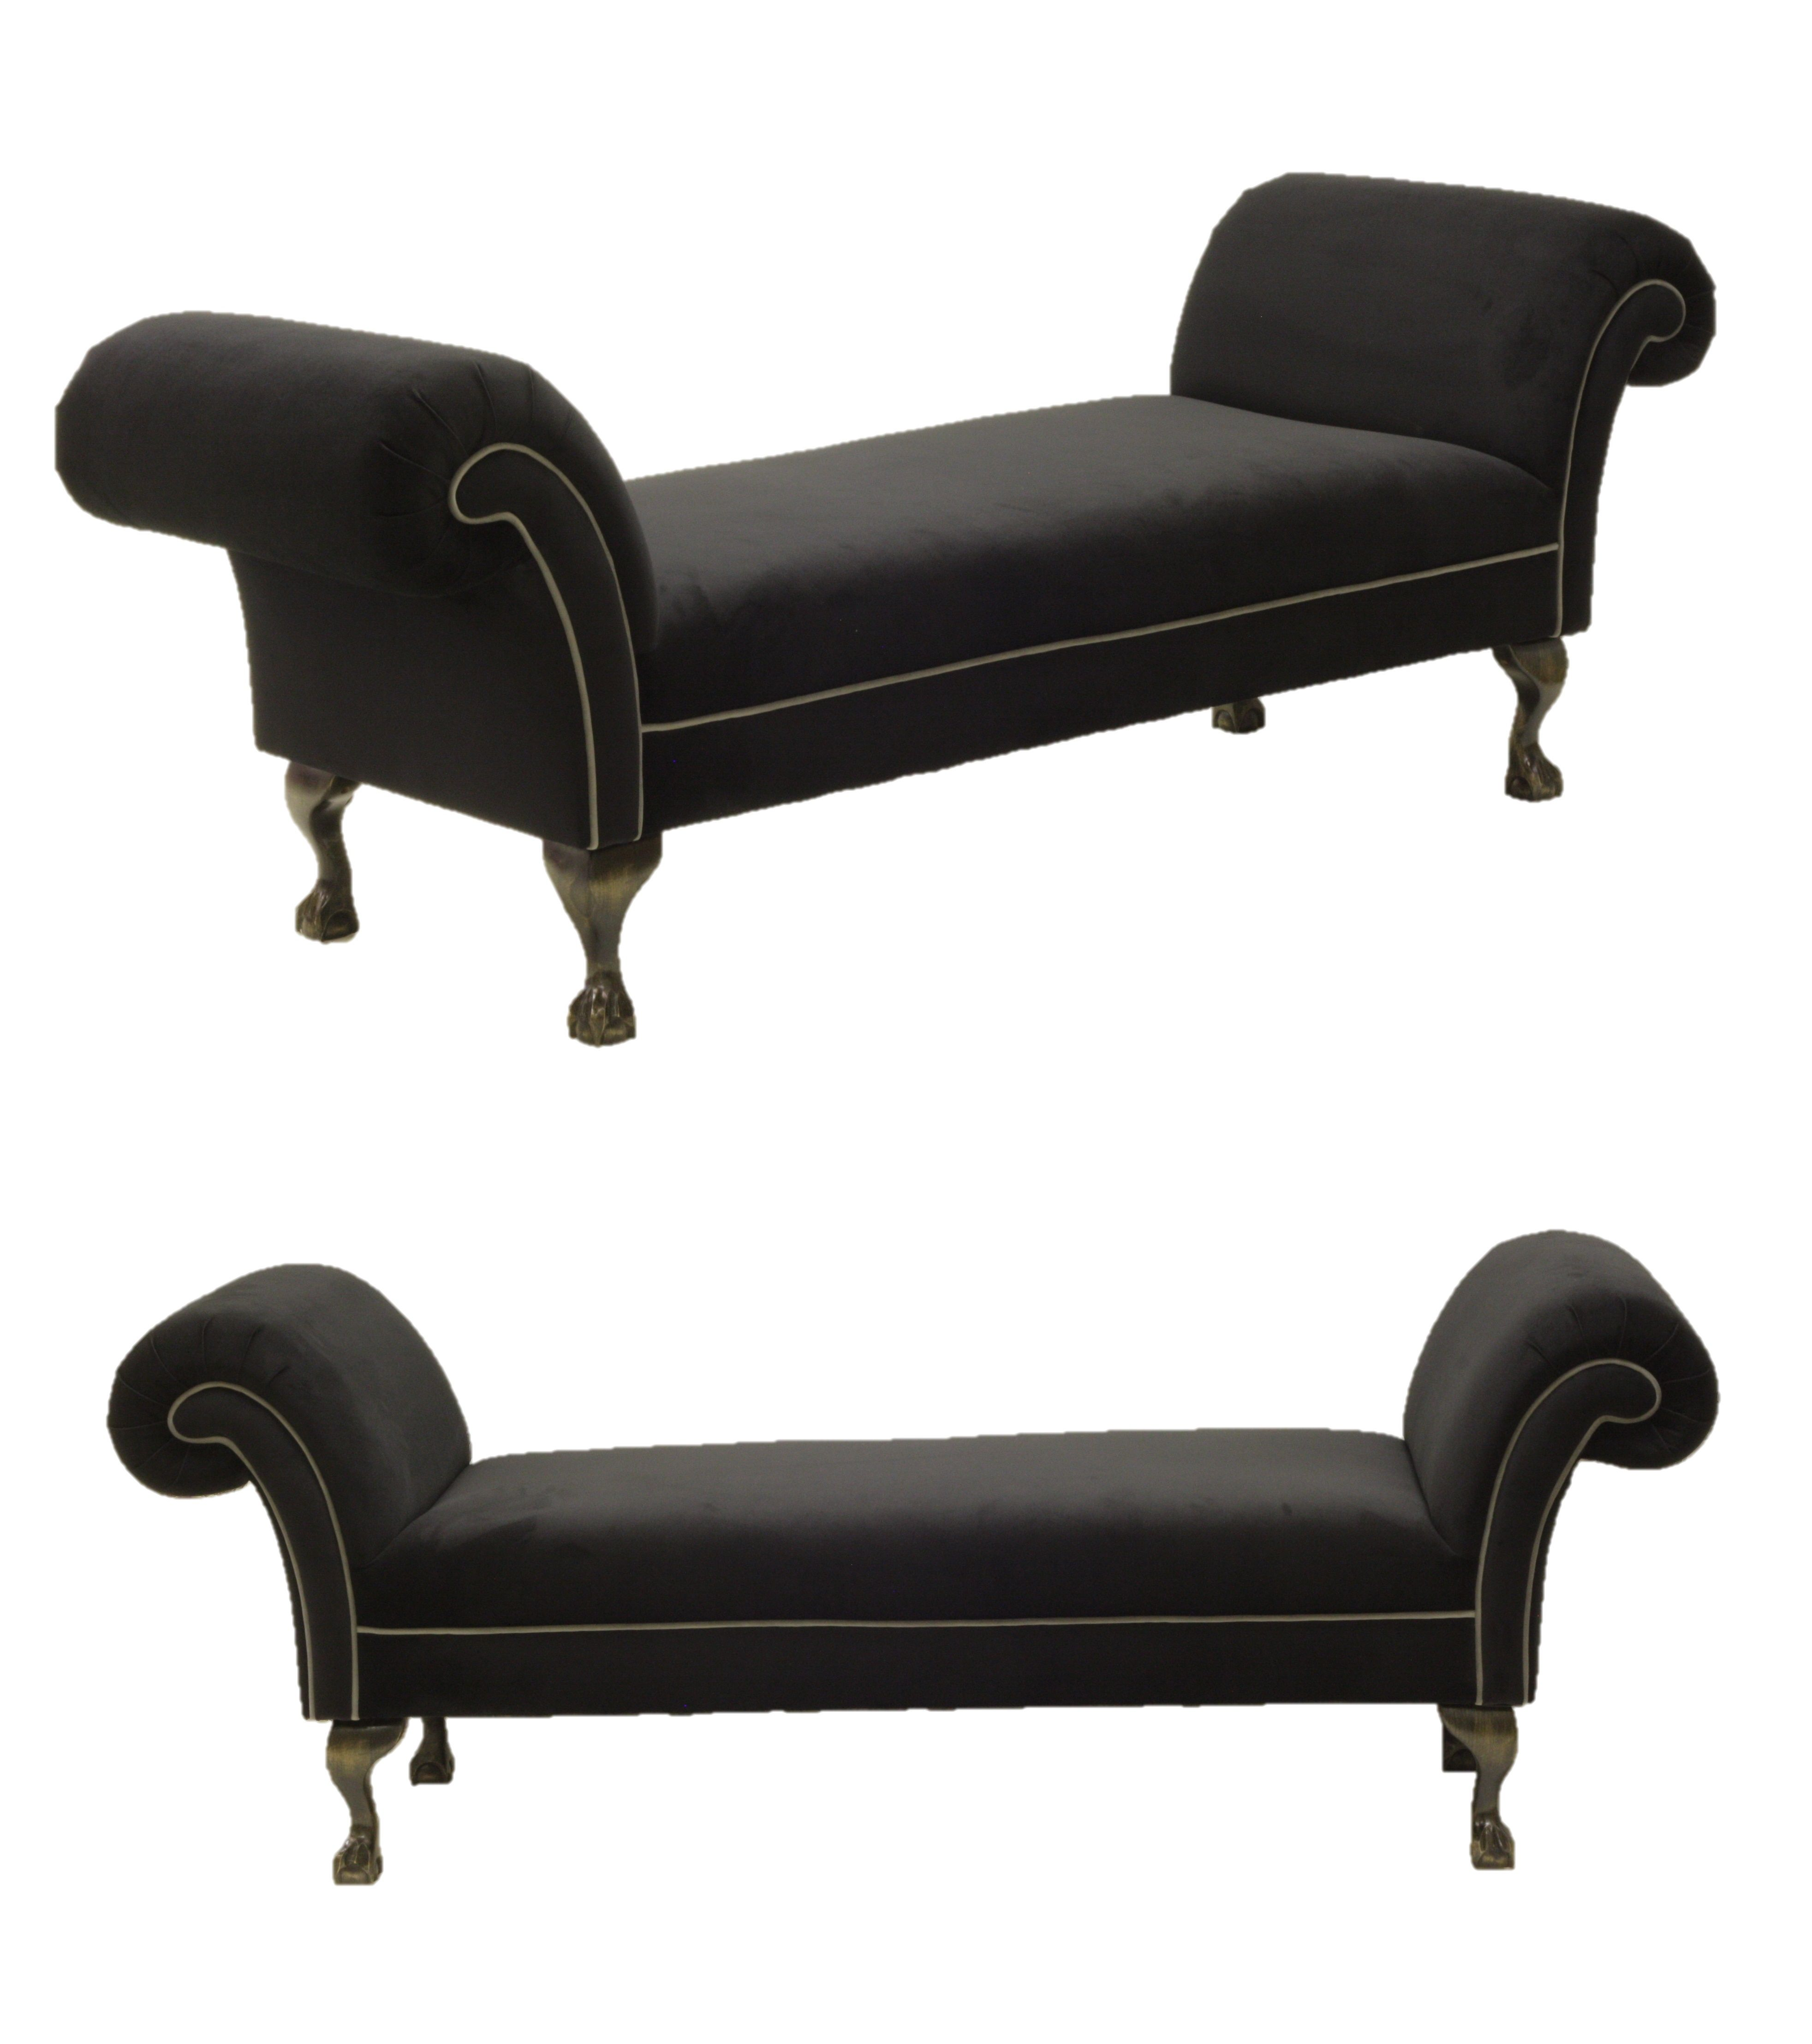 Backless Double Ended Chaise With Contrast Piping From Www